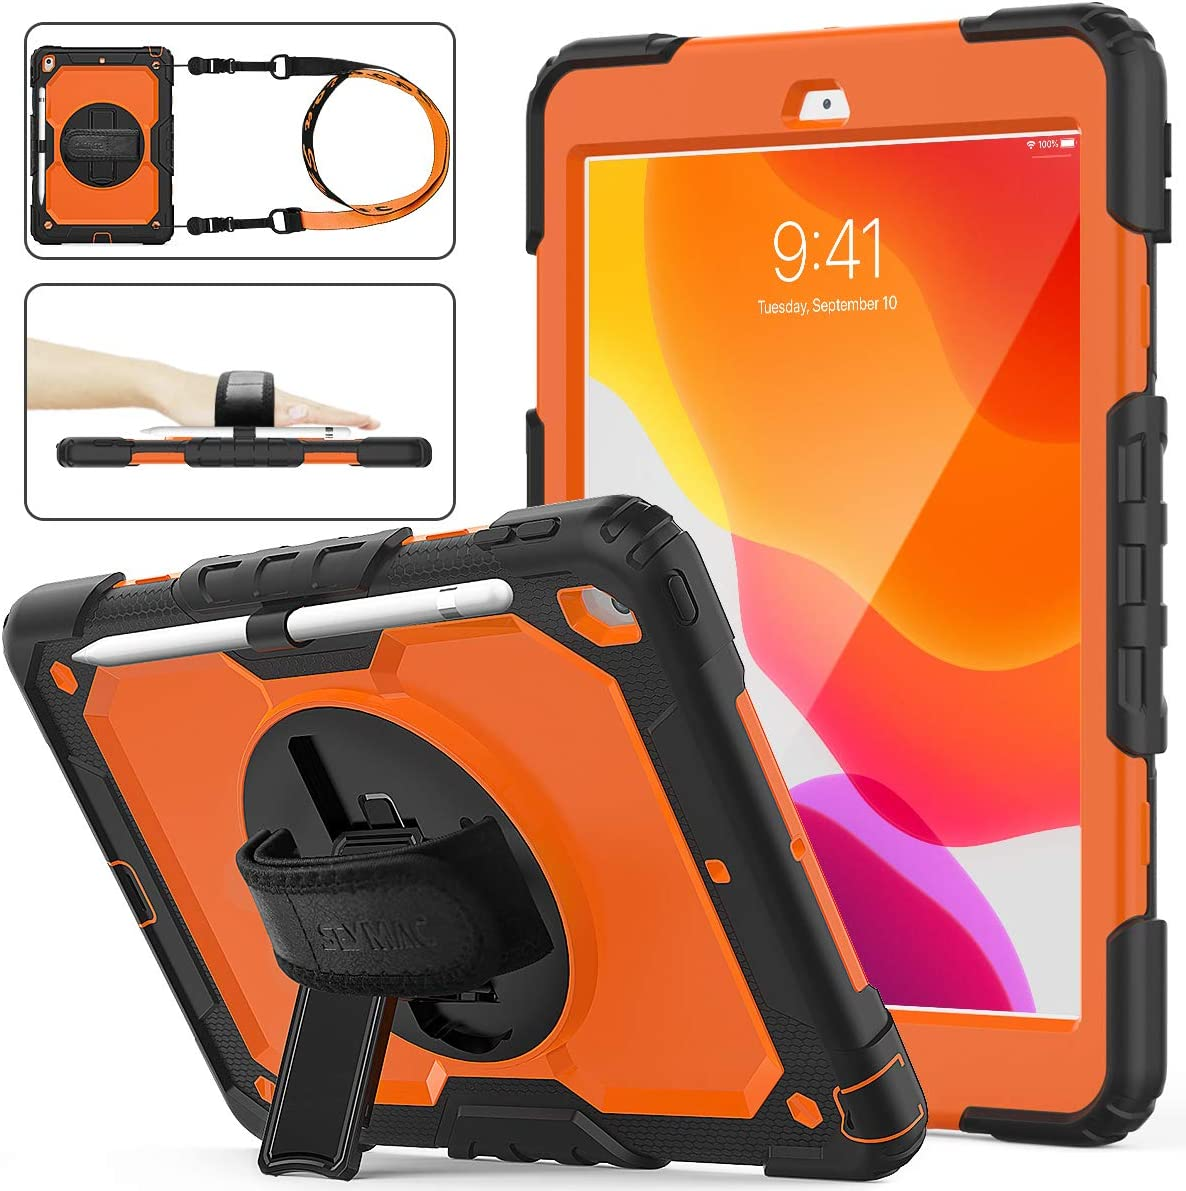 iPad 8th/7th Generation Case, New iPad 10.2 Case [Full-body] & [Shockproof] Armor Protective Case with [360 Rotating Stand] & Strap [Pencil Holder] for iPad 8th/7th Generation 2020/2019 (Orange+Black)